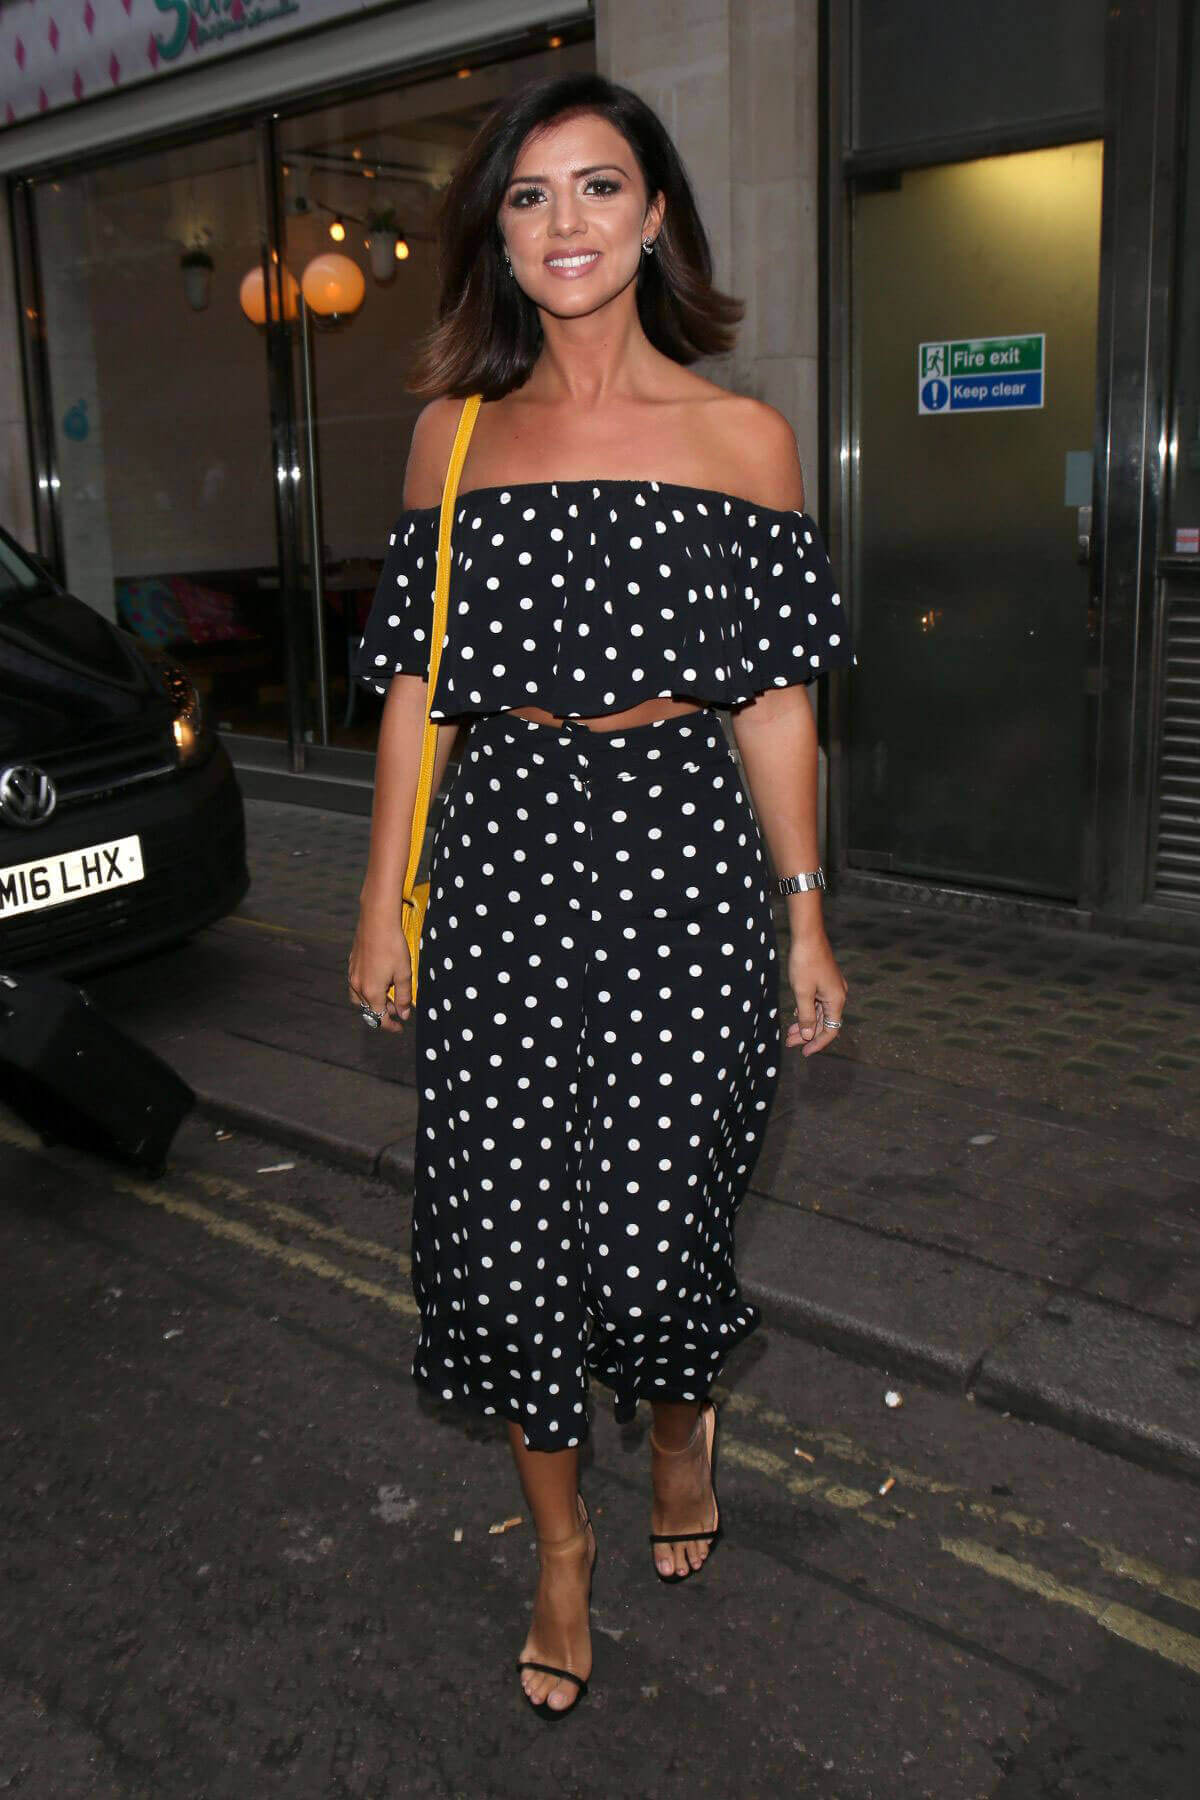 Lucy Mecklenburgh Wears Off Shoulder Dotted Dress Out in London